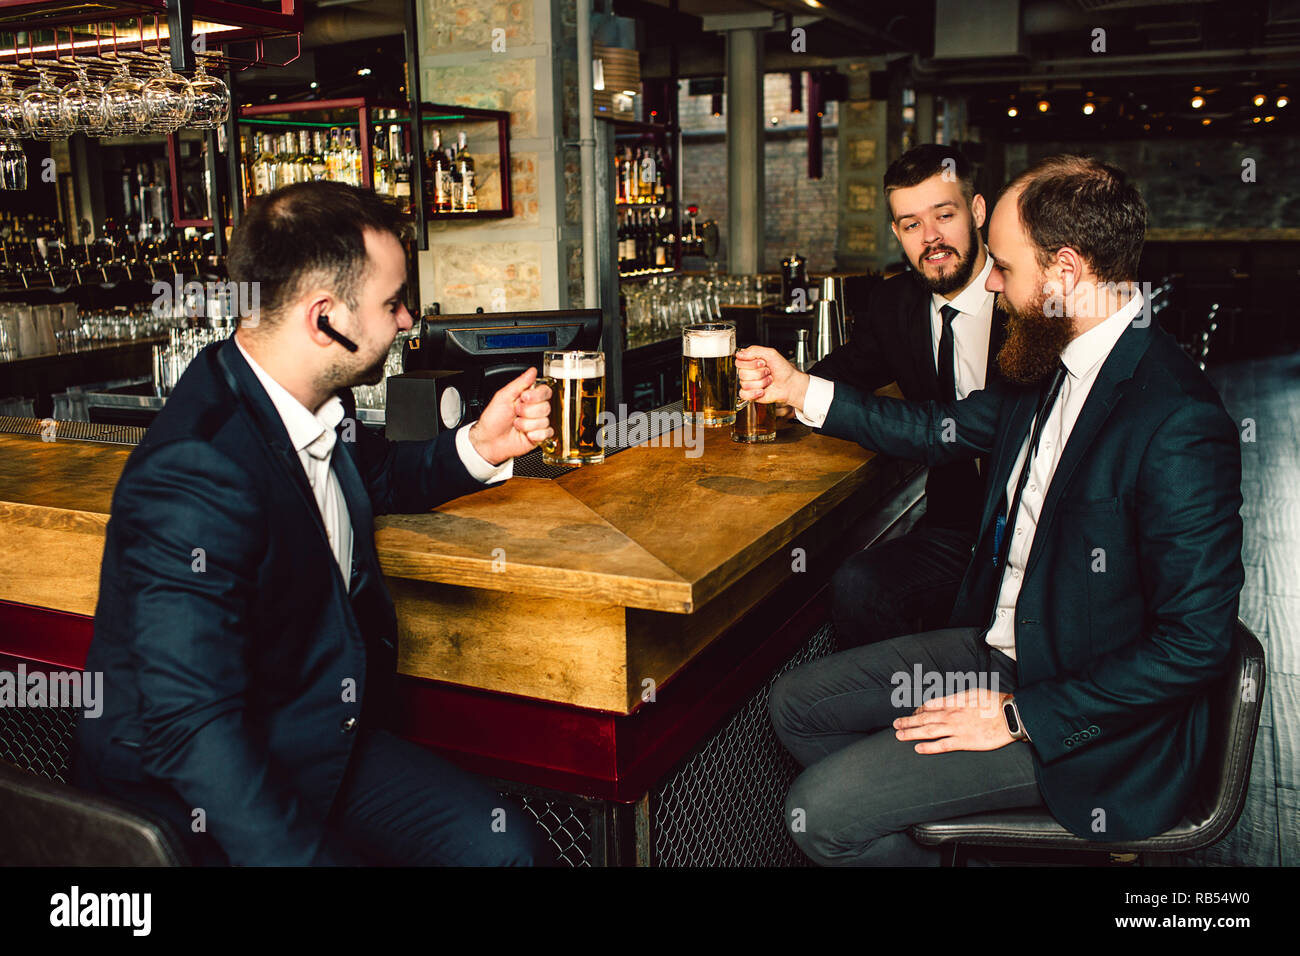 Three young businessman sit at table and hold cips of beer. They talk. People wear suits. First guy has black headphone in ear. - Stock Image